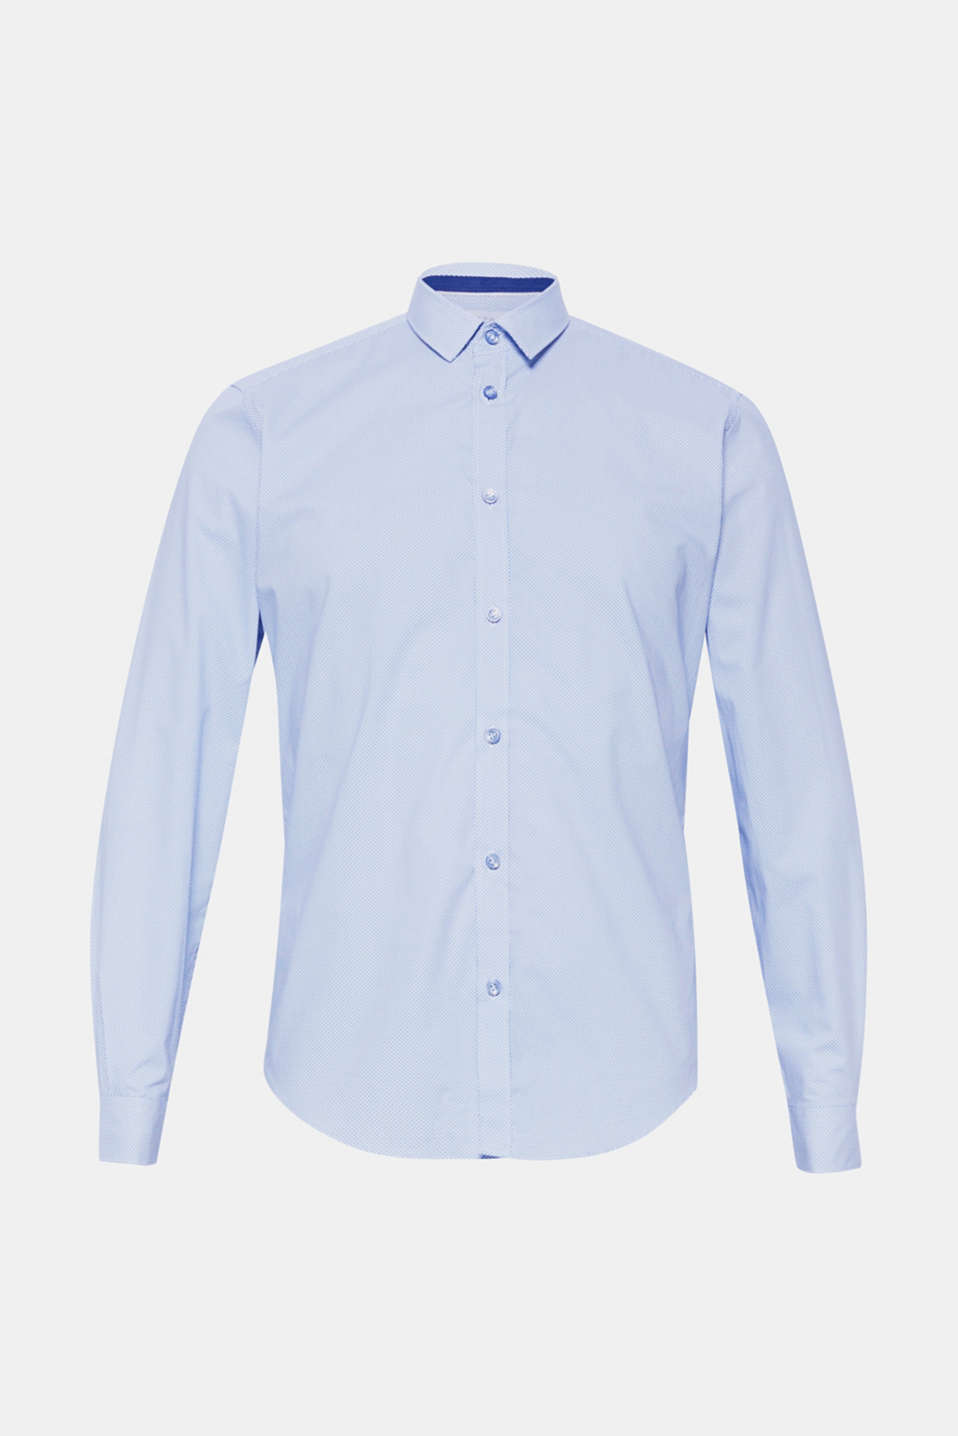 Shirts woven Slim fit, LIGHT BLUE, detail image number 7